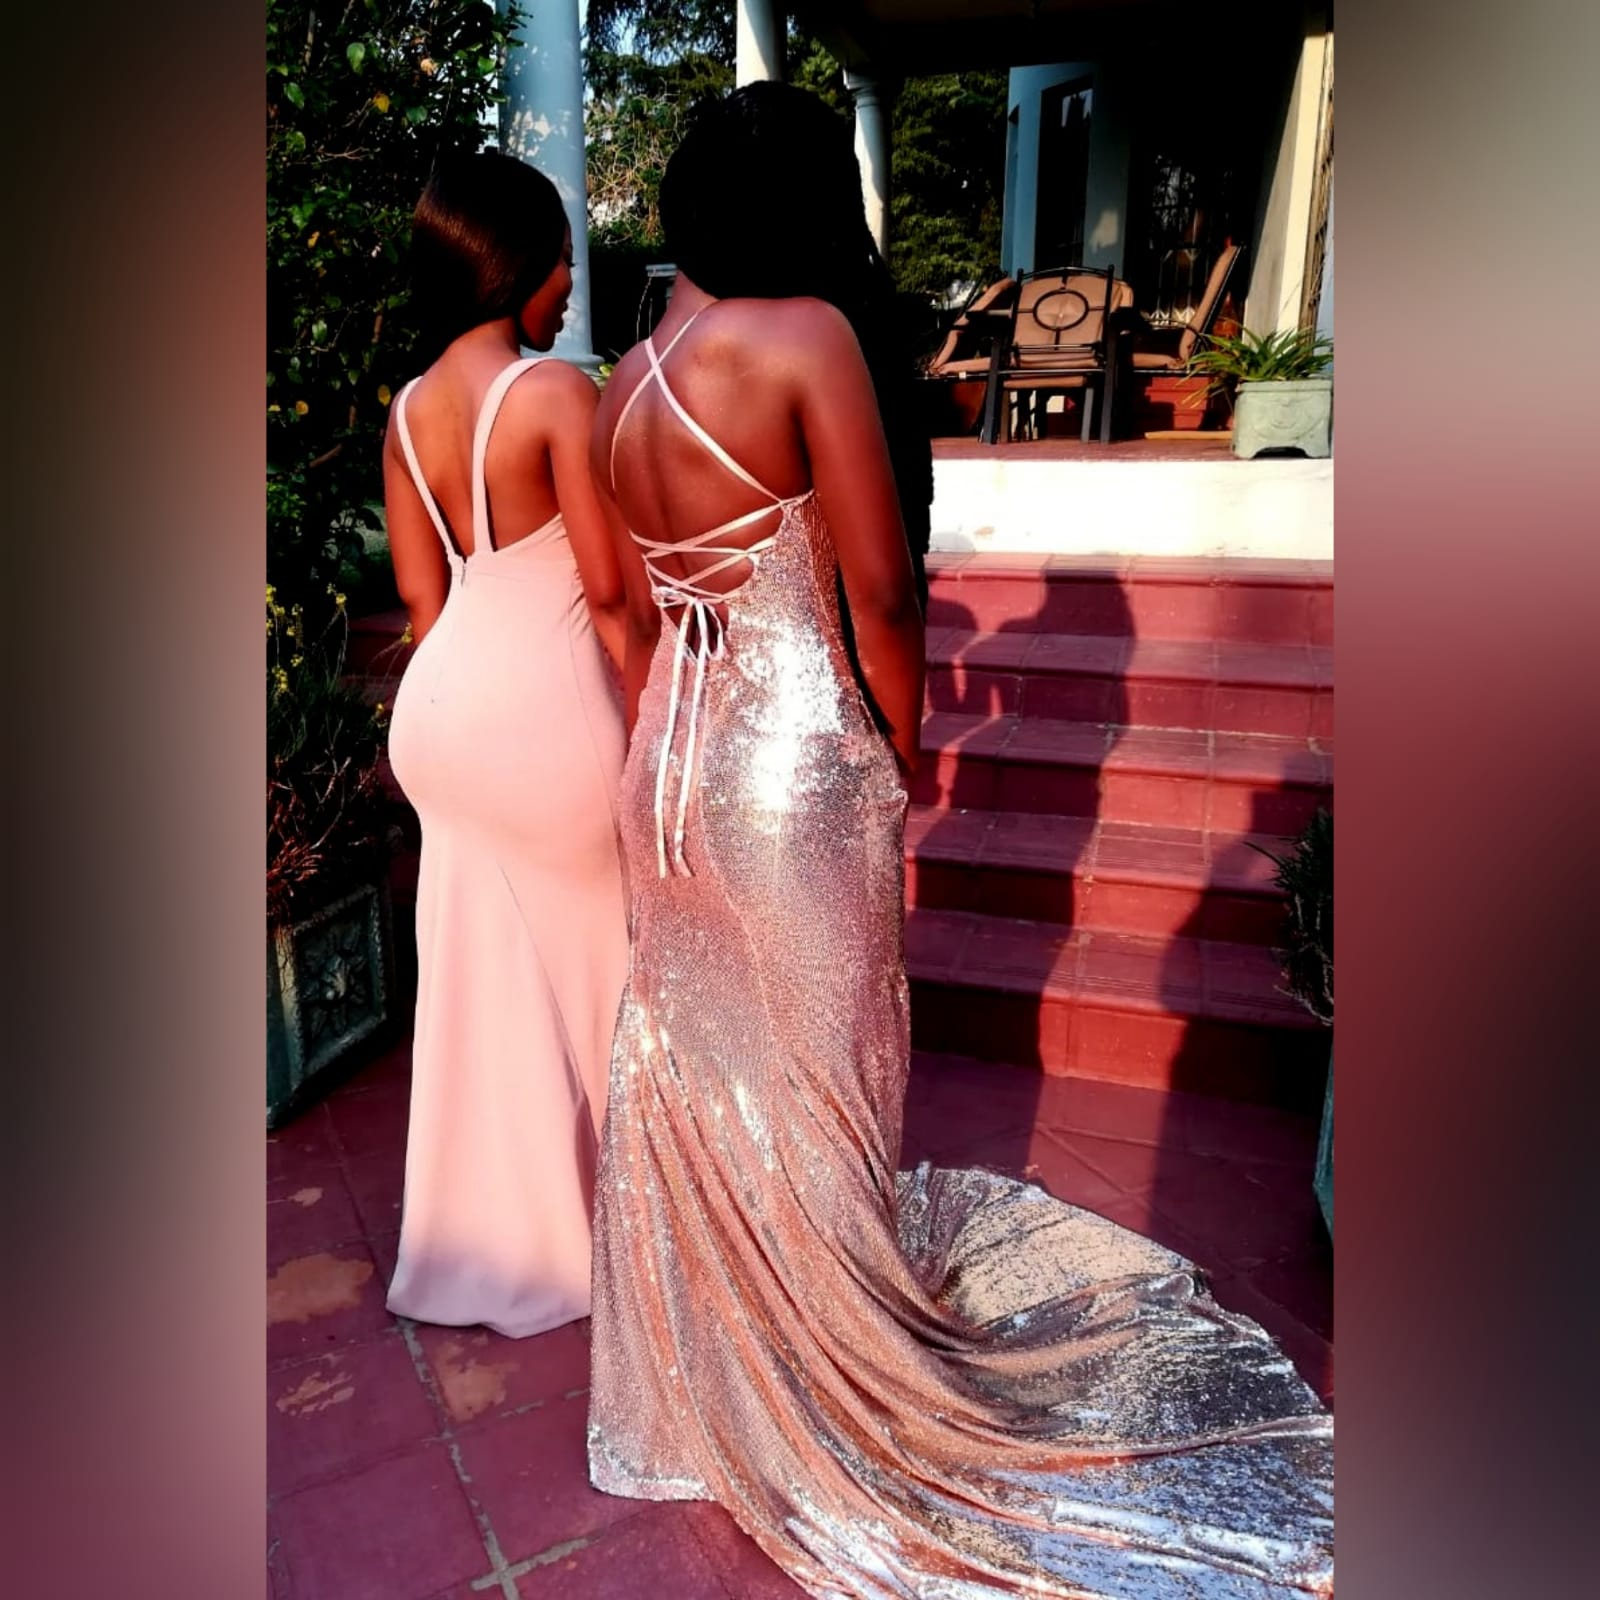 Rose gold fully sequined soft mermaid evening dress 5 rose gold fully sequined soft mermaid evening dress with a low open back, with lace-up detail.